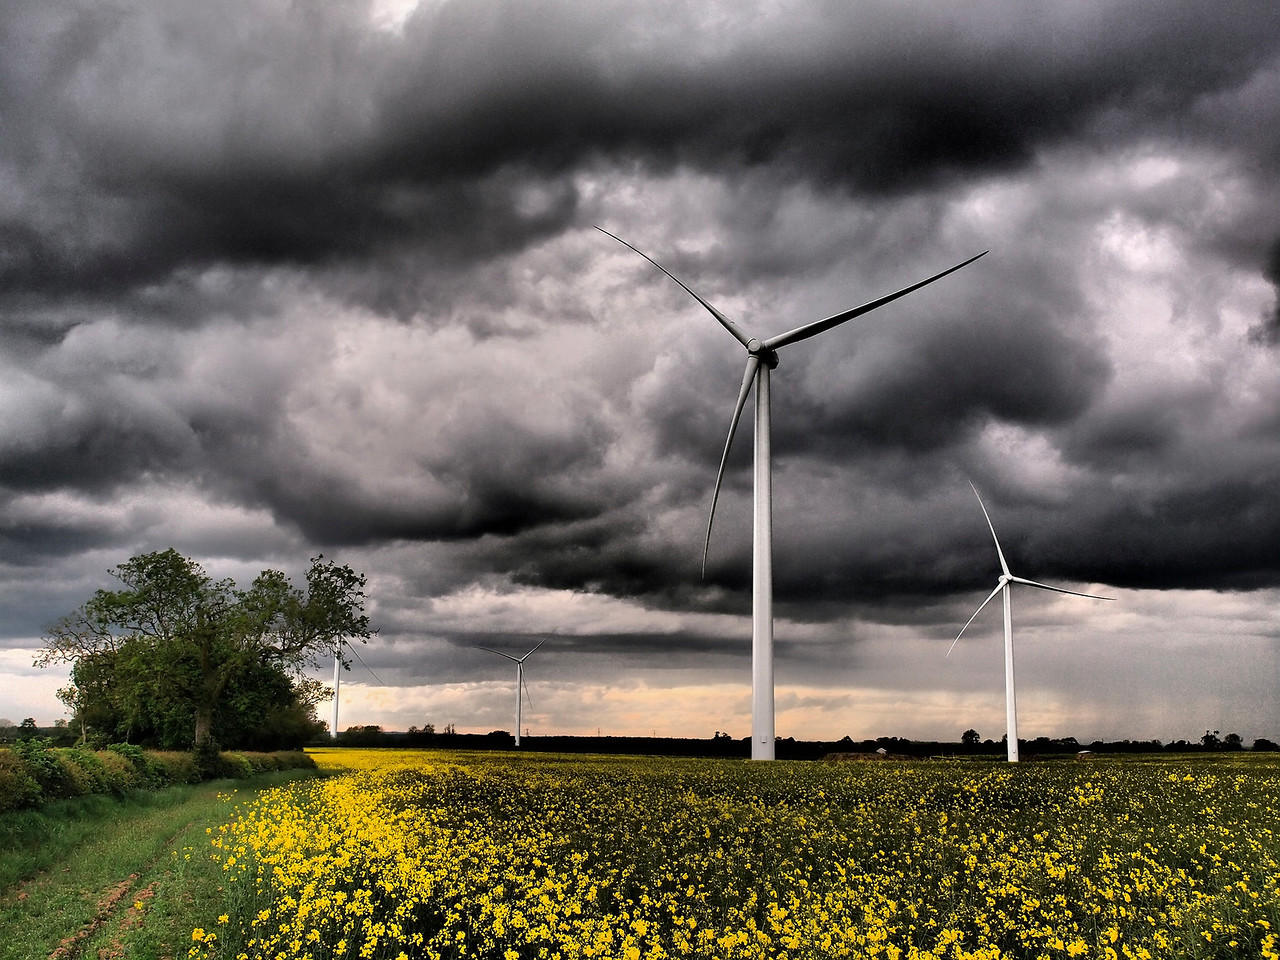 May 13 2011. Some great storm clouds rolling across parts of the Midlands. The Olympus E5 dramatic tone art filter really exacerbates the mood. Back over to the Gilmorton windfarm :-) I want to be the first person to capture a lightning bolt blasting the turbines. One day! E5 with 12-60mm SWD.